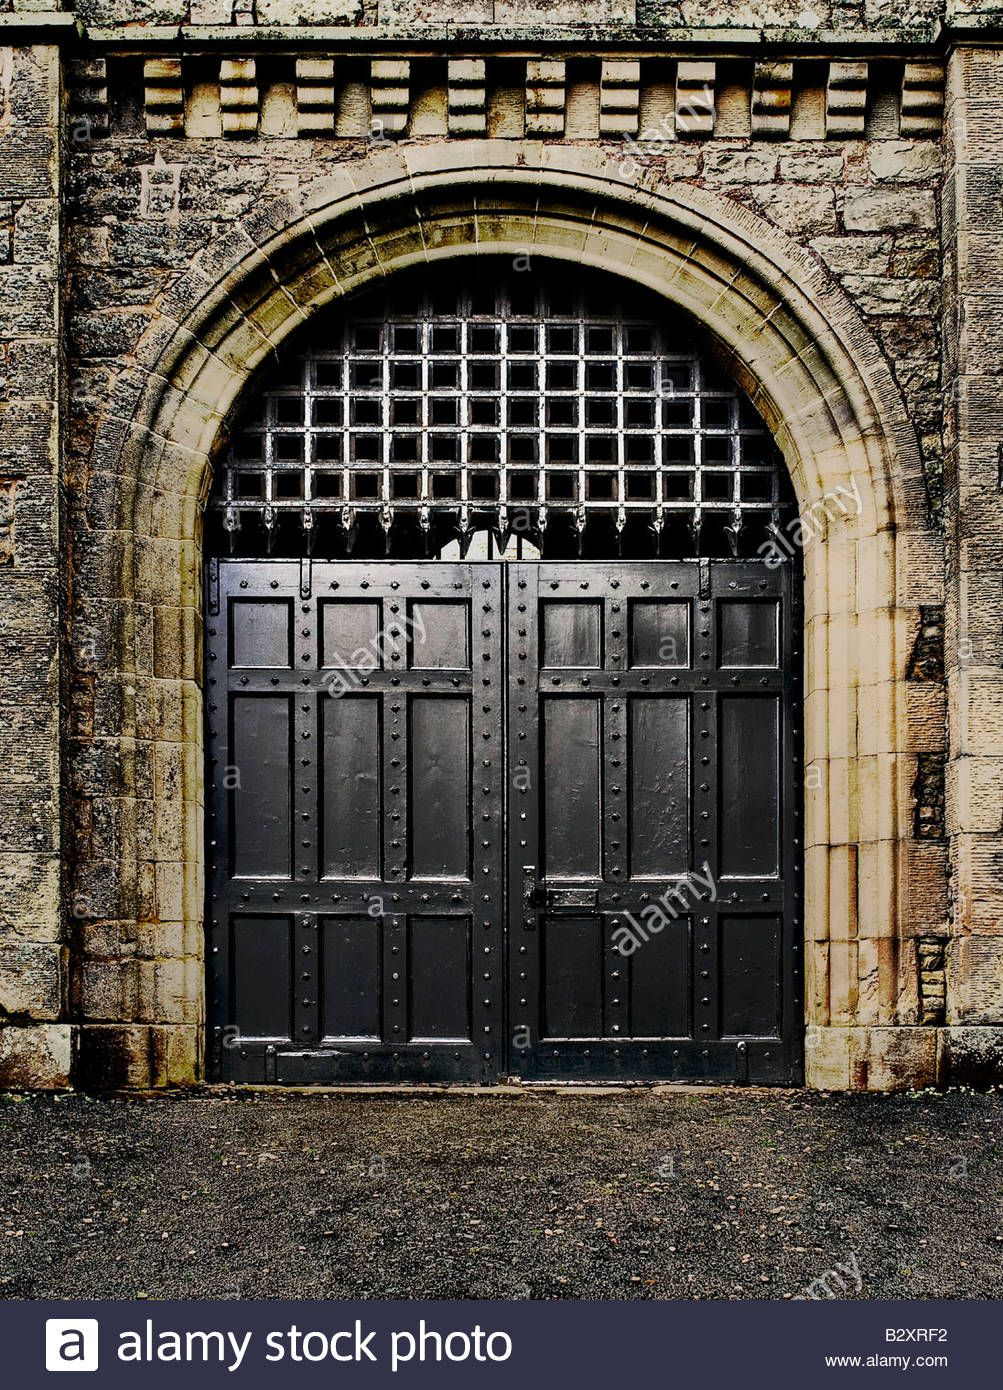 portcullis-and-prison-gates-in-an-old-jail- & portcullis-and-prison-gates-in-an-old-jail-in-jedburgh-scotland ...